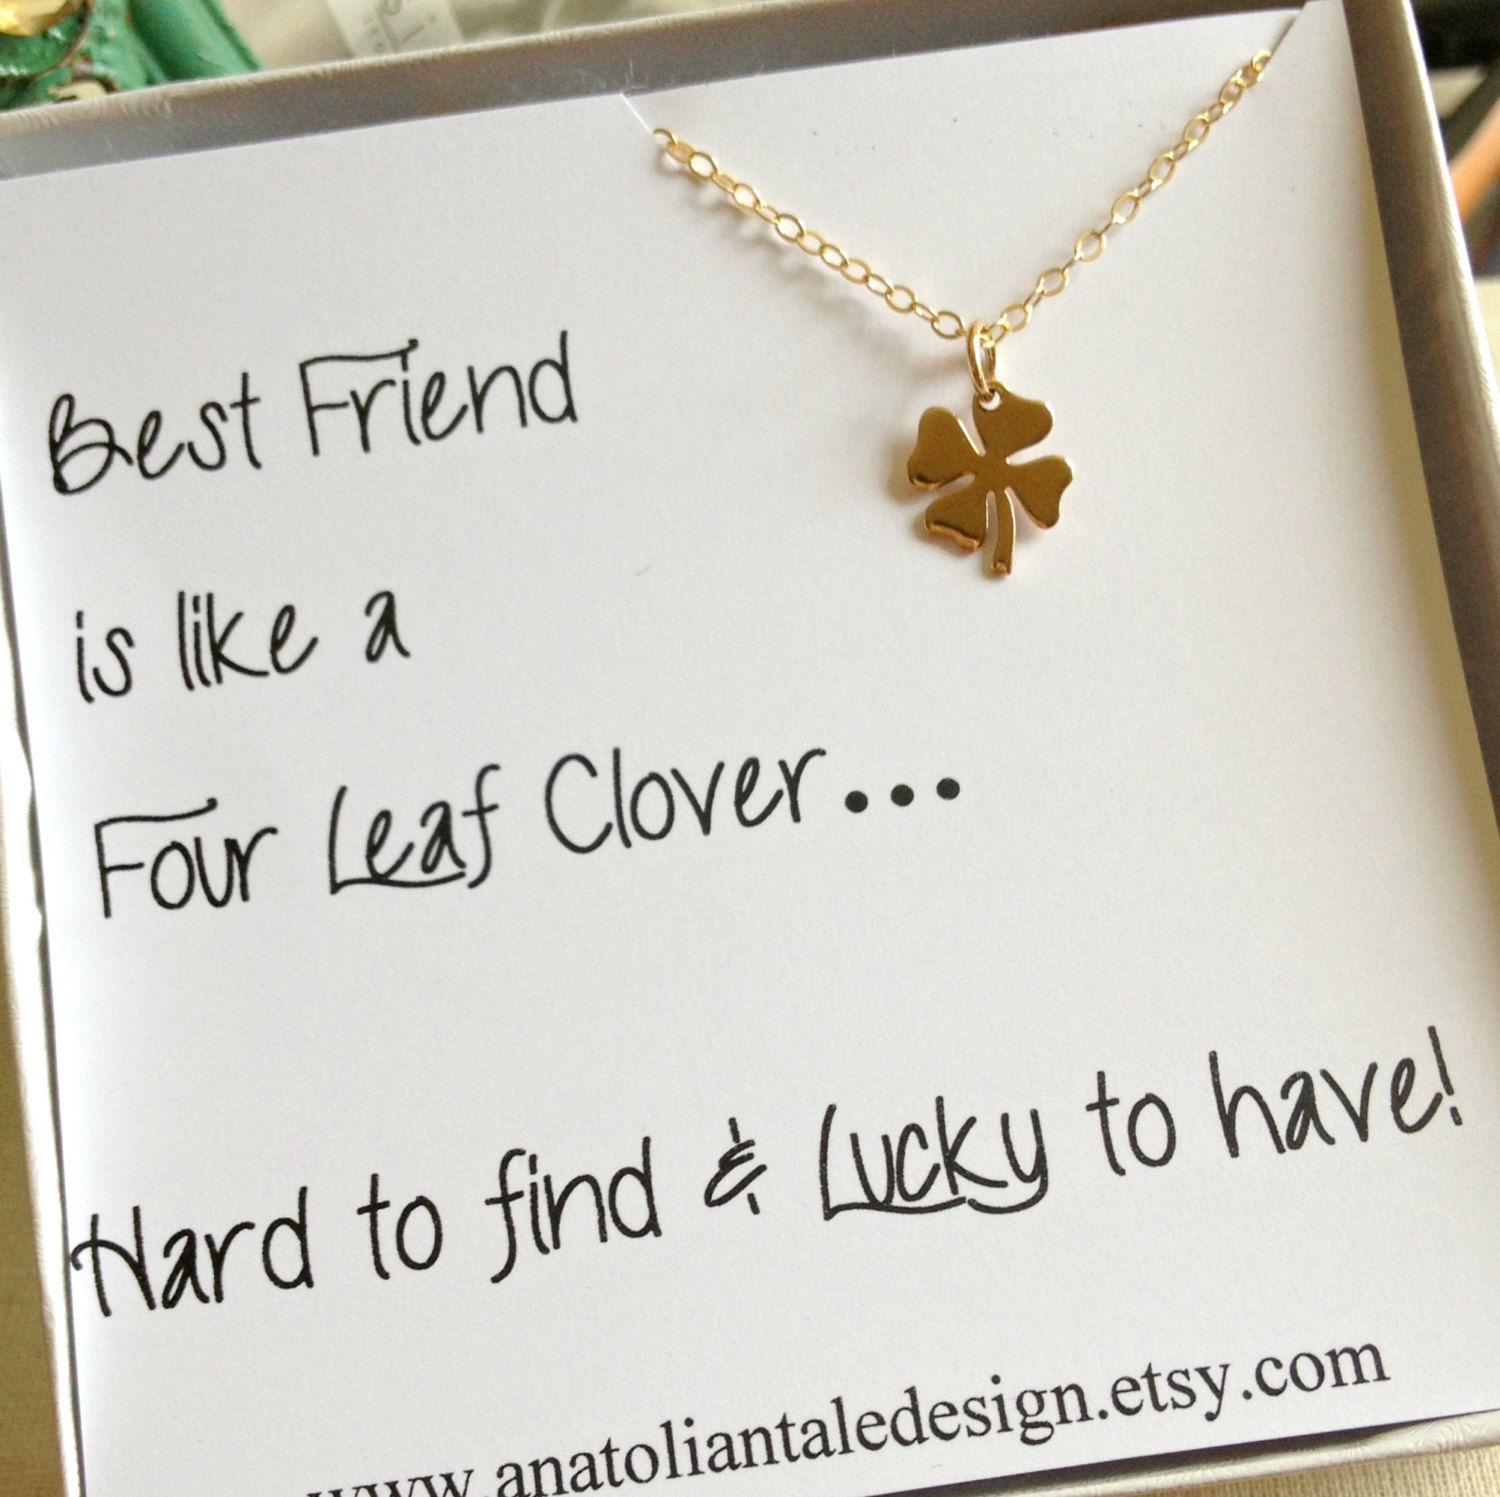 quotes about christmas getting closer 21 quotes - What To Get My Best Friend For Christmas